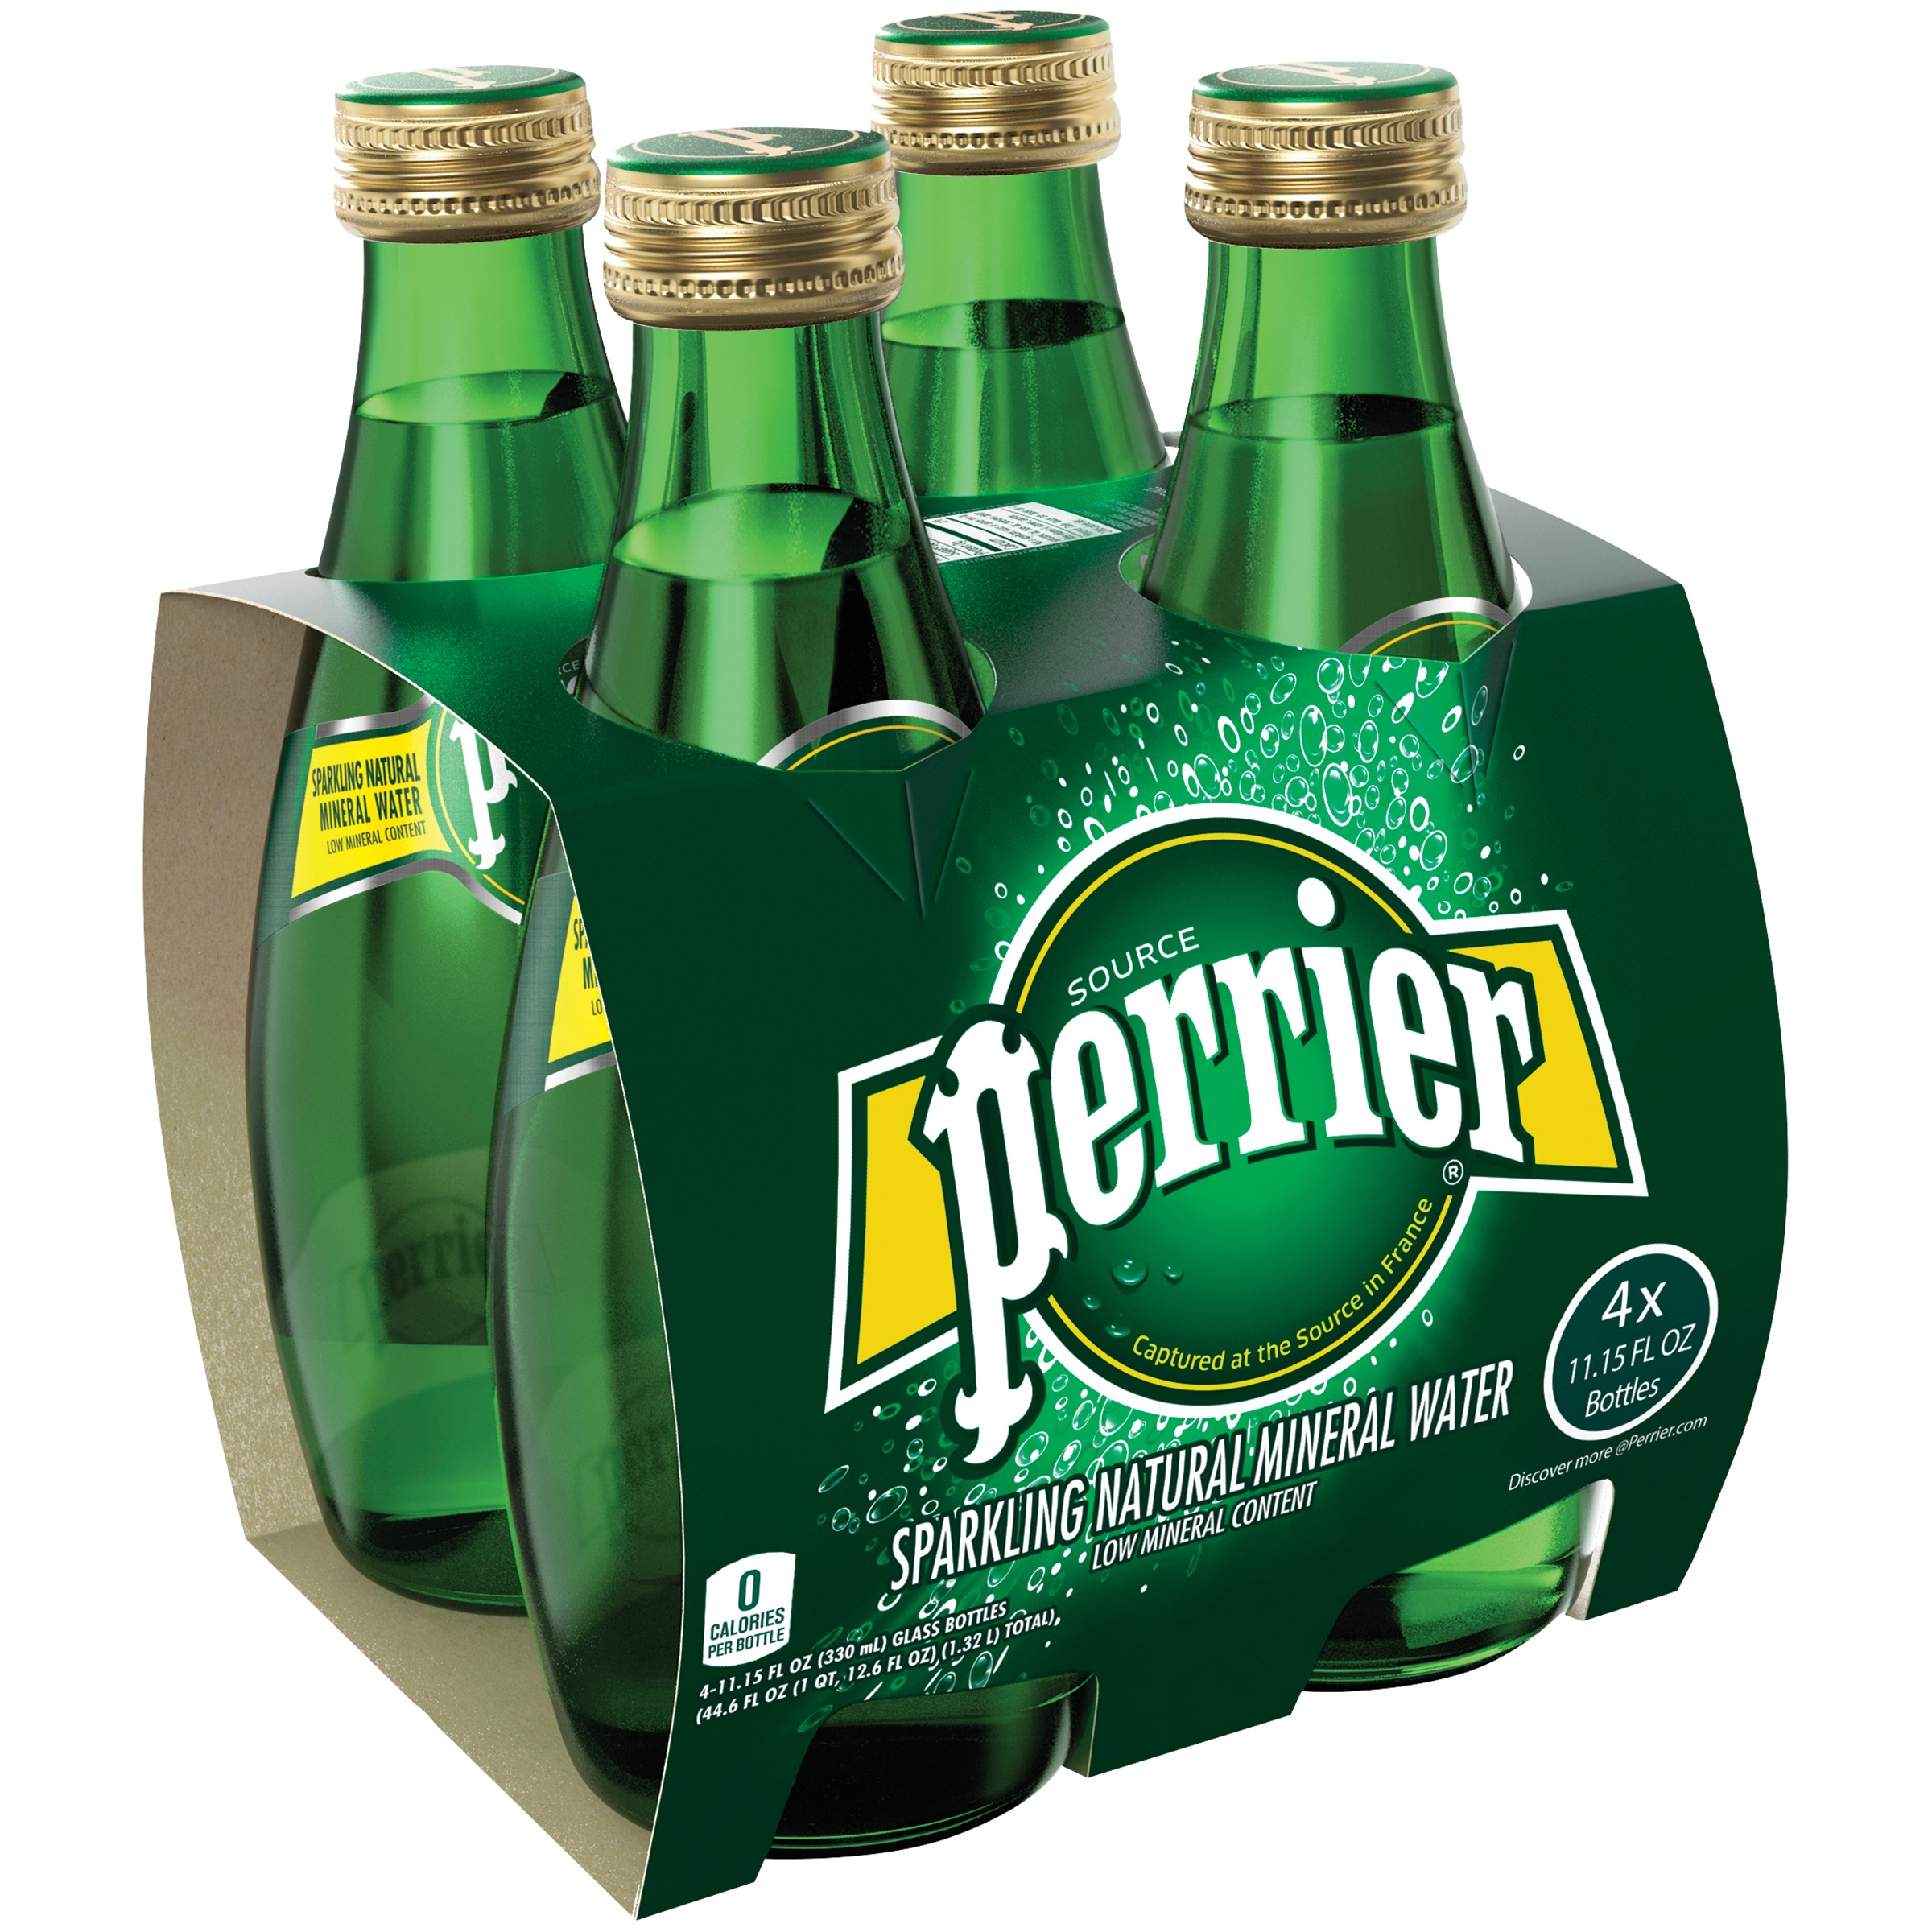 PERRIER Sparkling Natural Mineral Water, 11.15-ounce glass bottles (Total of 24) by Nestlé Waters, North America Inc.